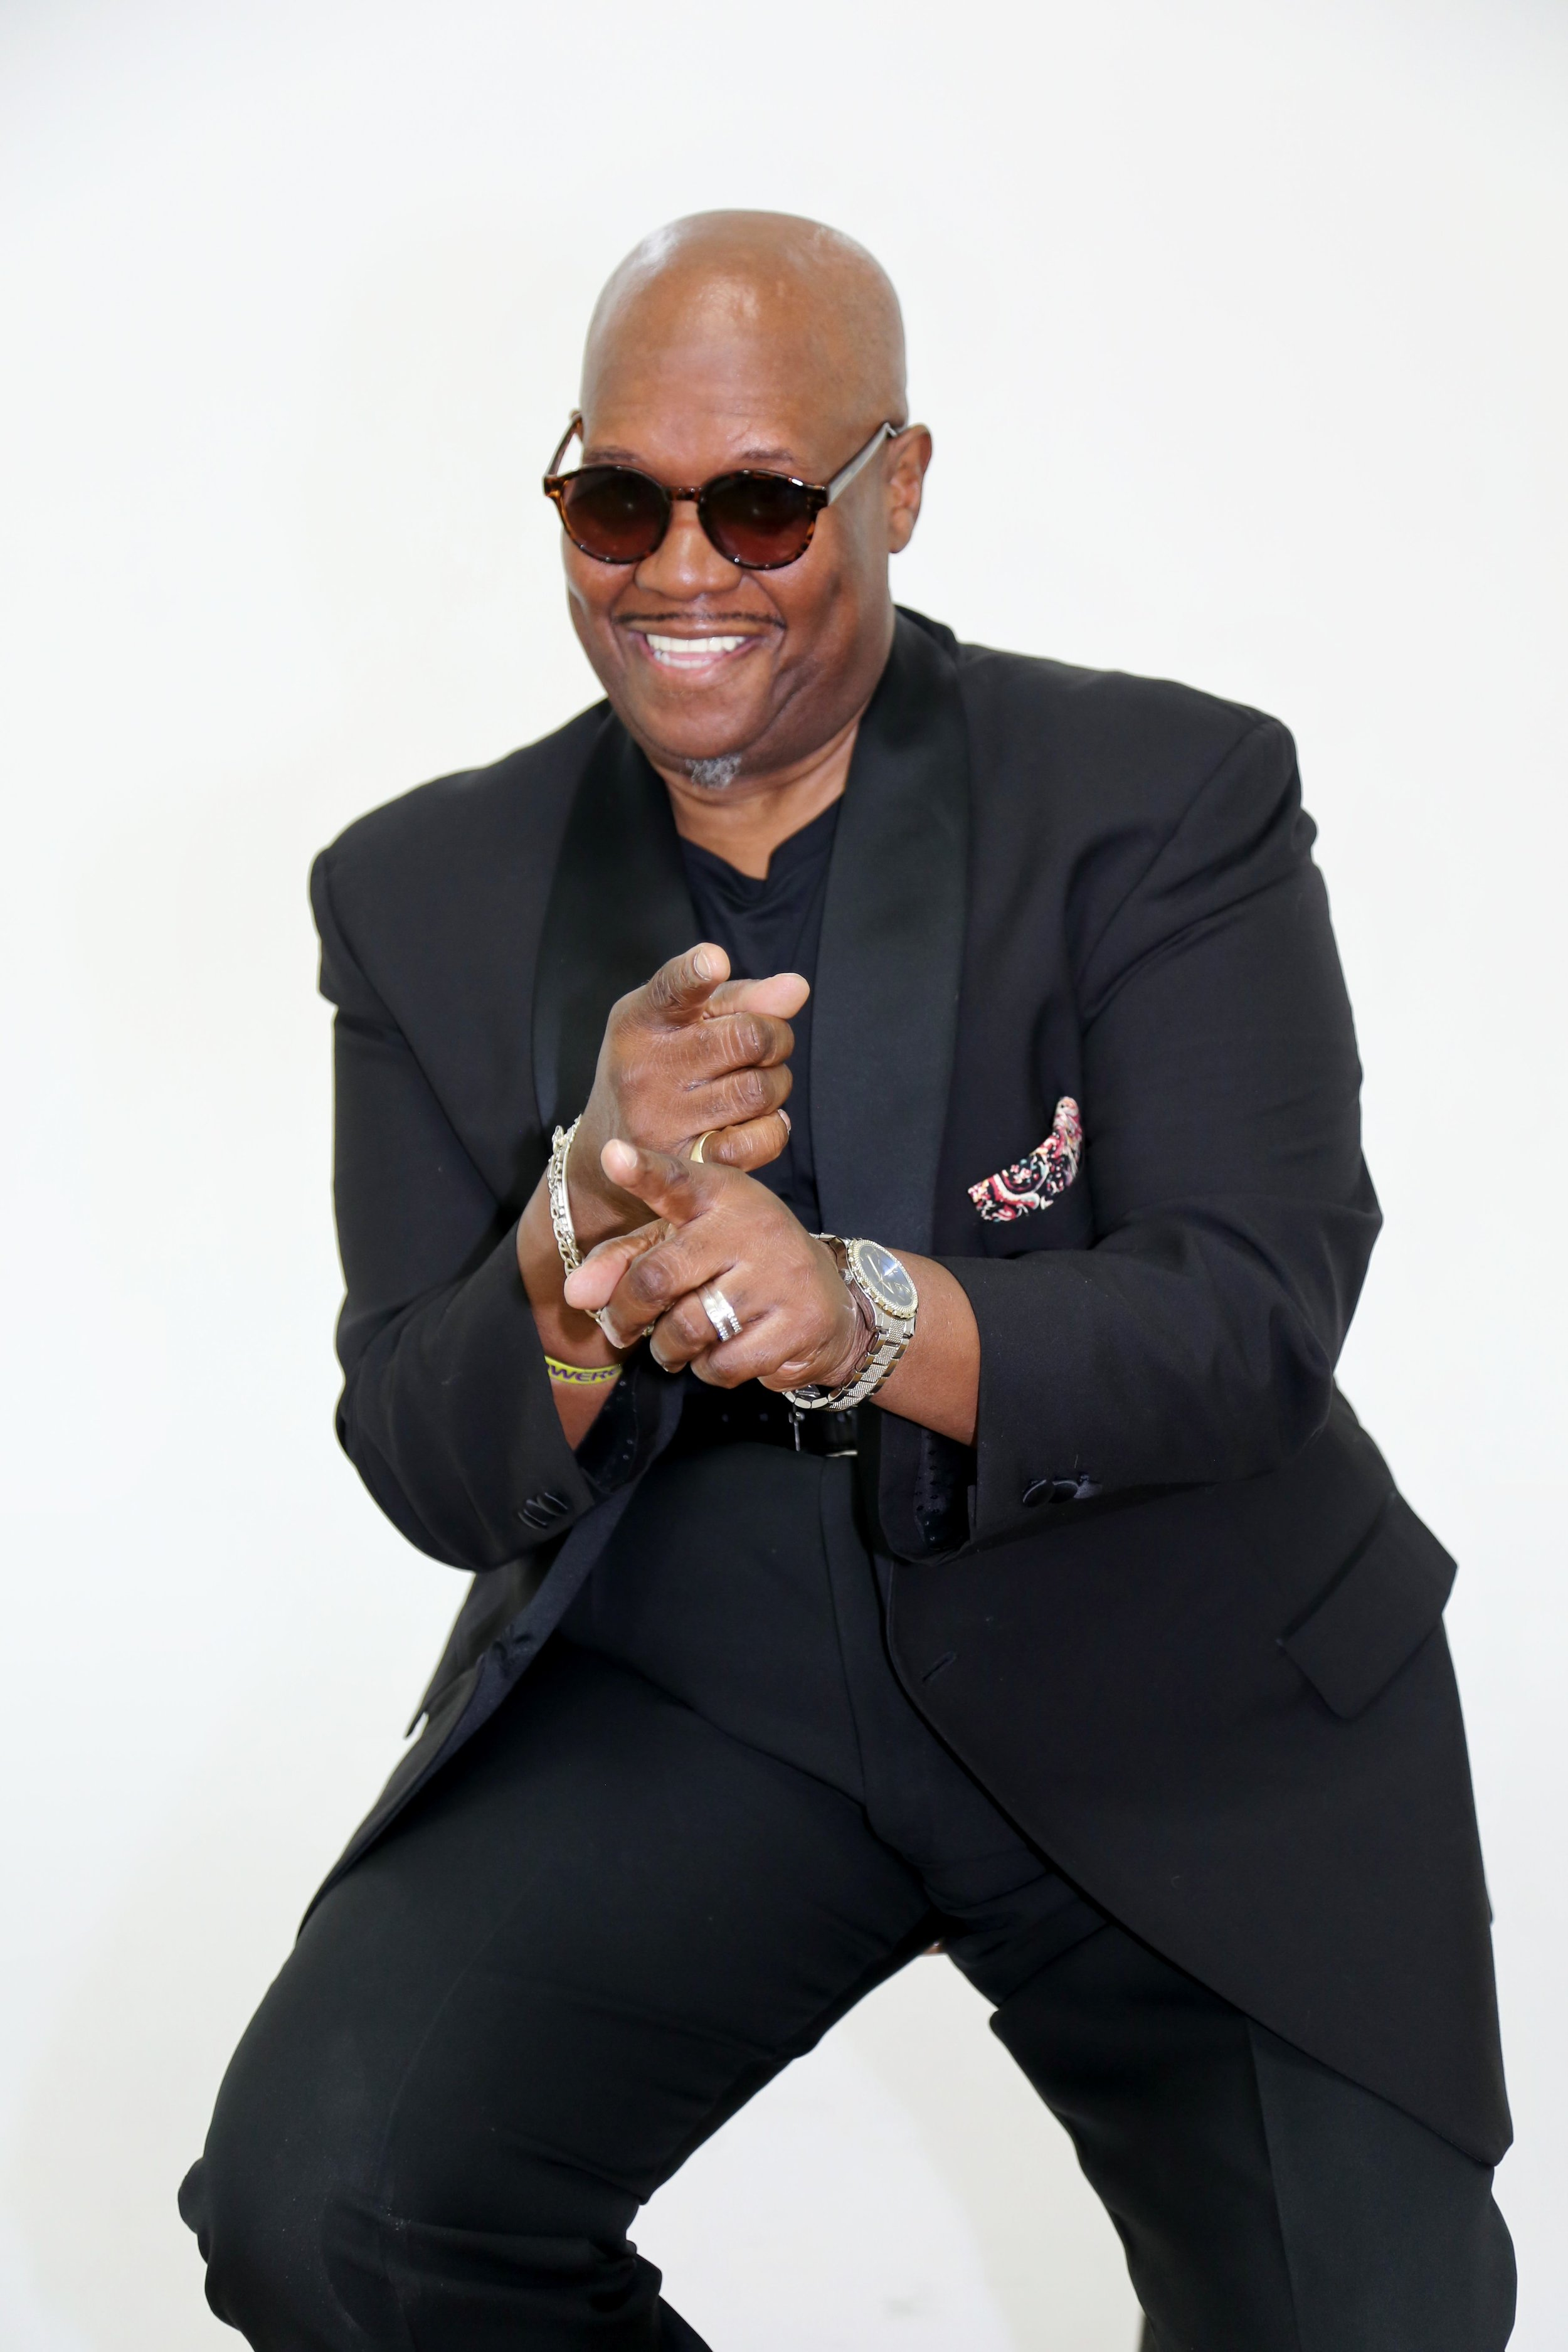 R & B/Soul artist Toney Lee closes World Fest 2019 with his inimitable style of gospel music for a night of love, joy and inspiration that will send you into fall feeling renewed and refreshed. Toney and his band Good Energy will be joined by the neo-soul gospel choir Freemind, the pop-soul vocals of Sky's The Limit and smooth jazz by Nick The Sax Man. Dancing encouraged!